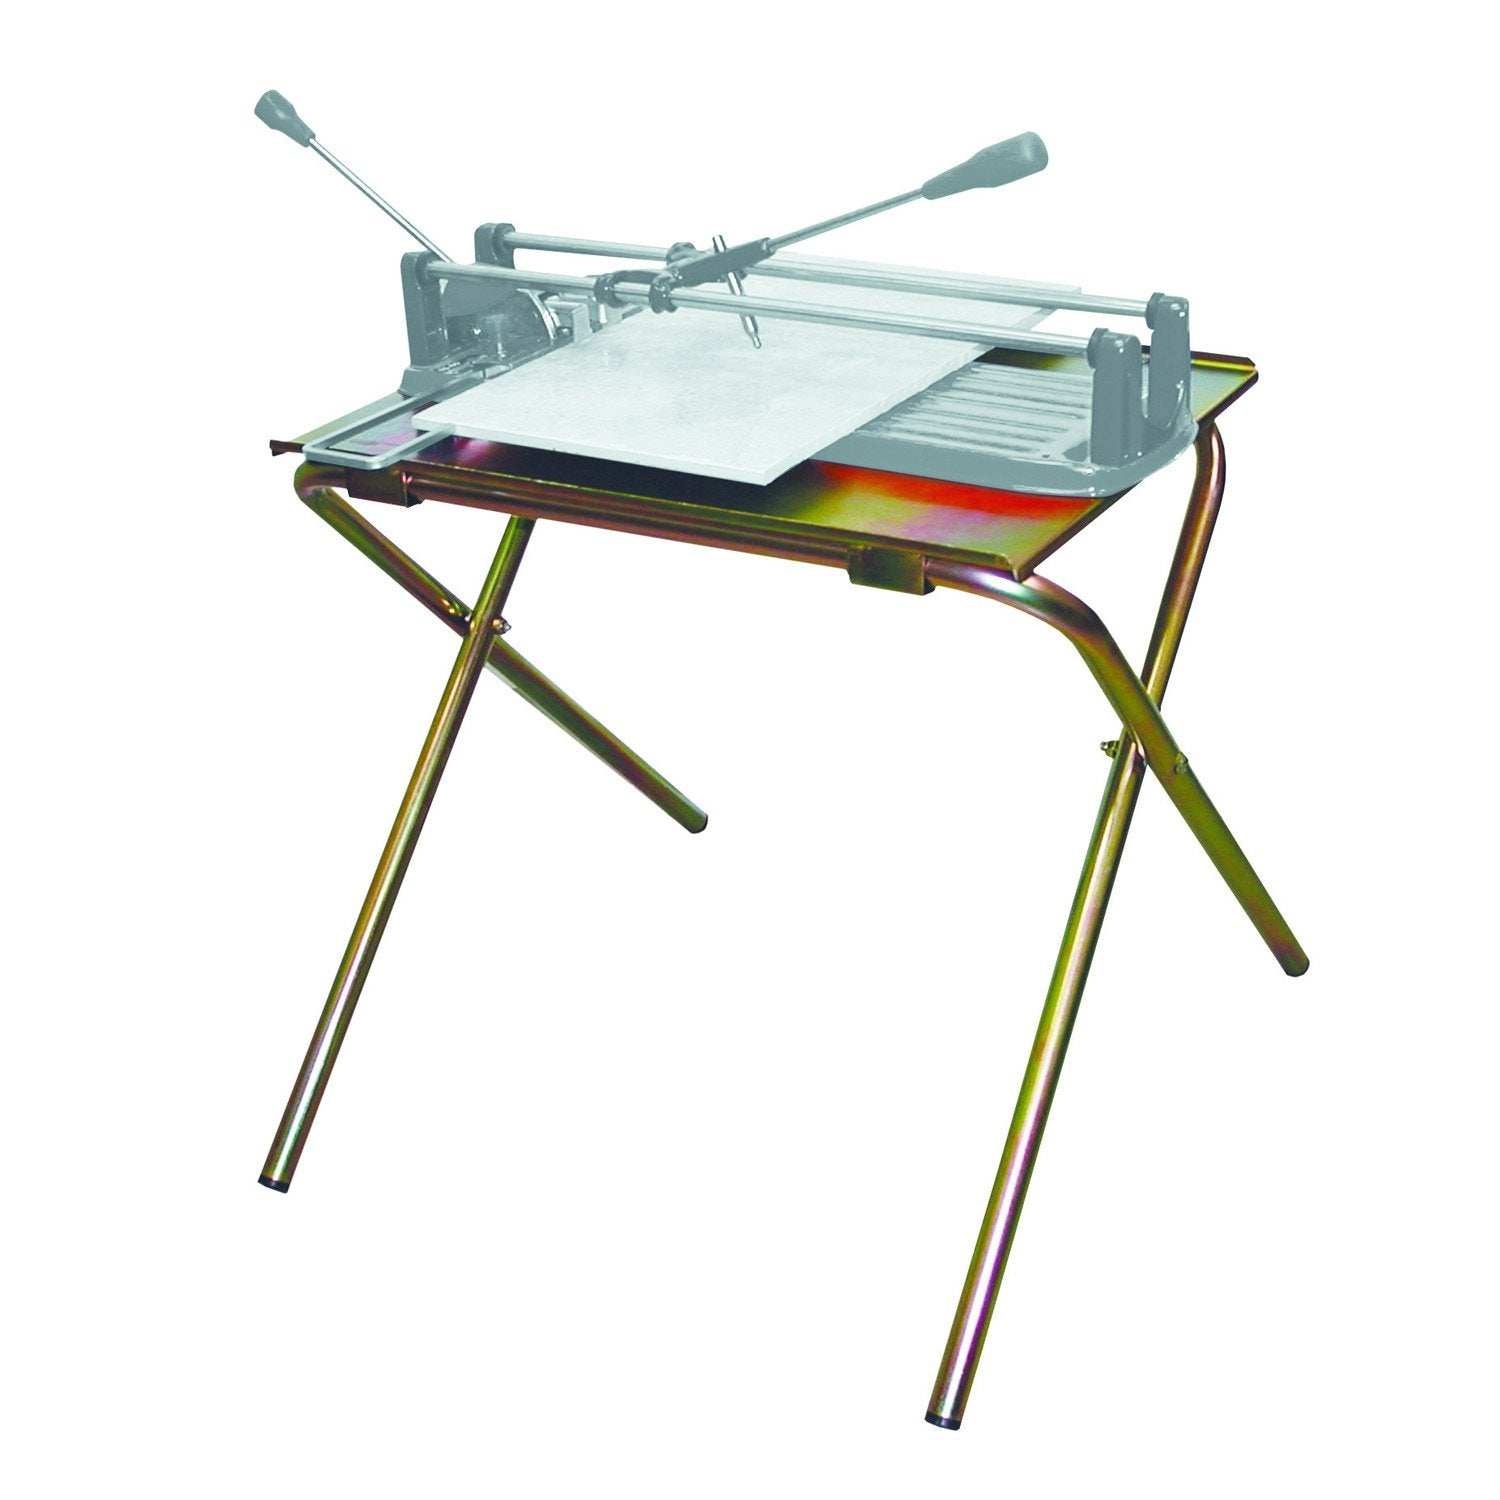 Table pliante r glable rubi leroy merlin - Leroy merlin table pliante ...